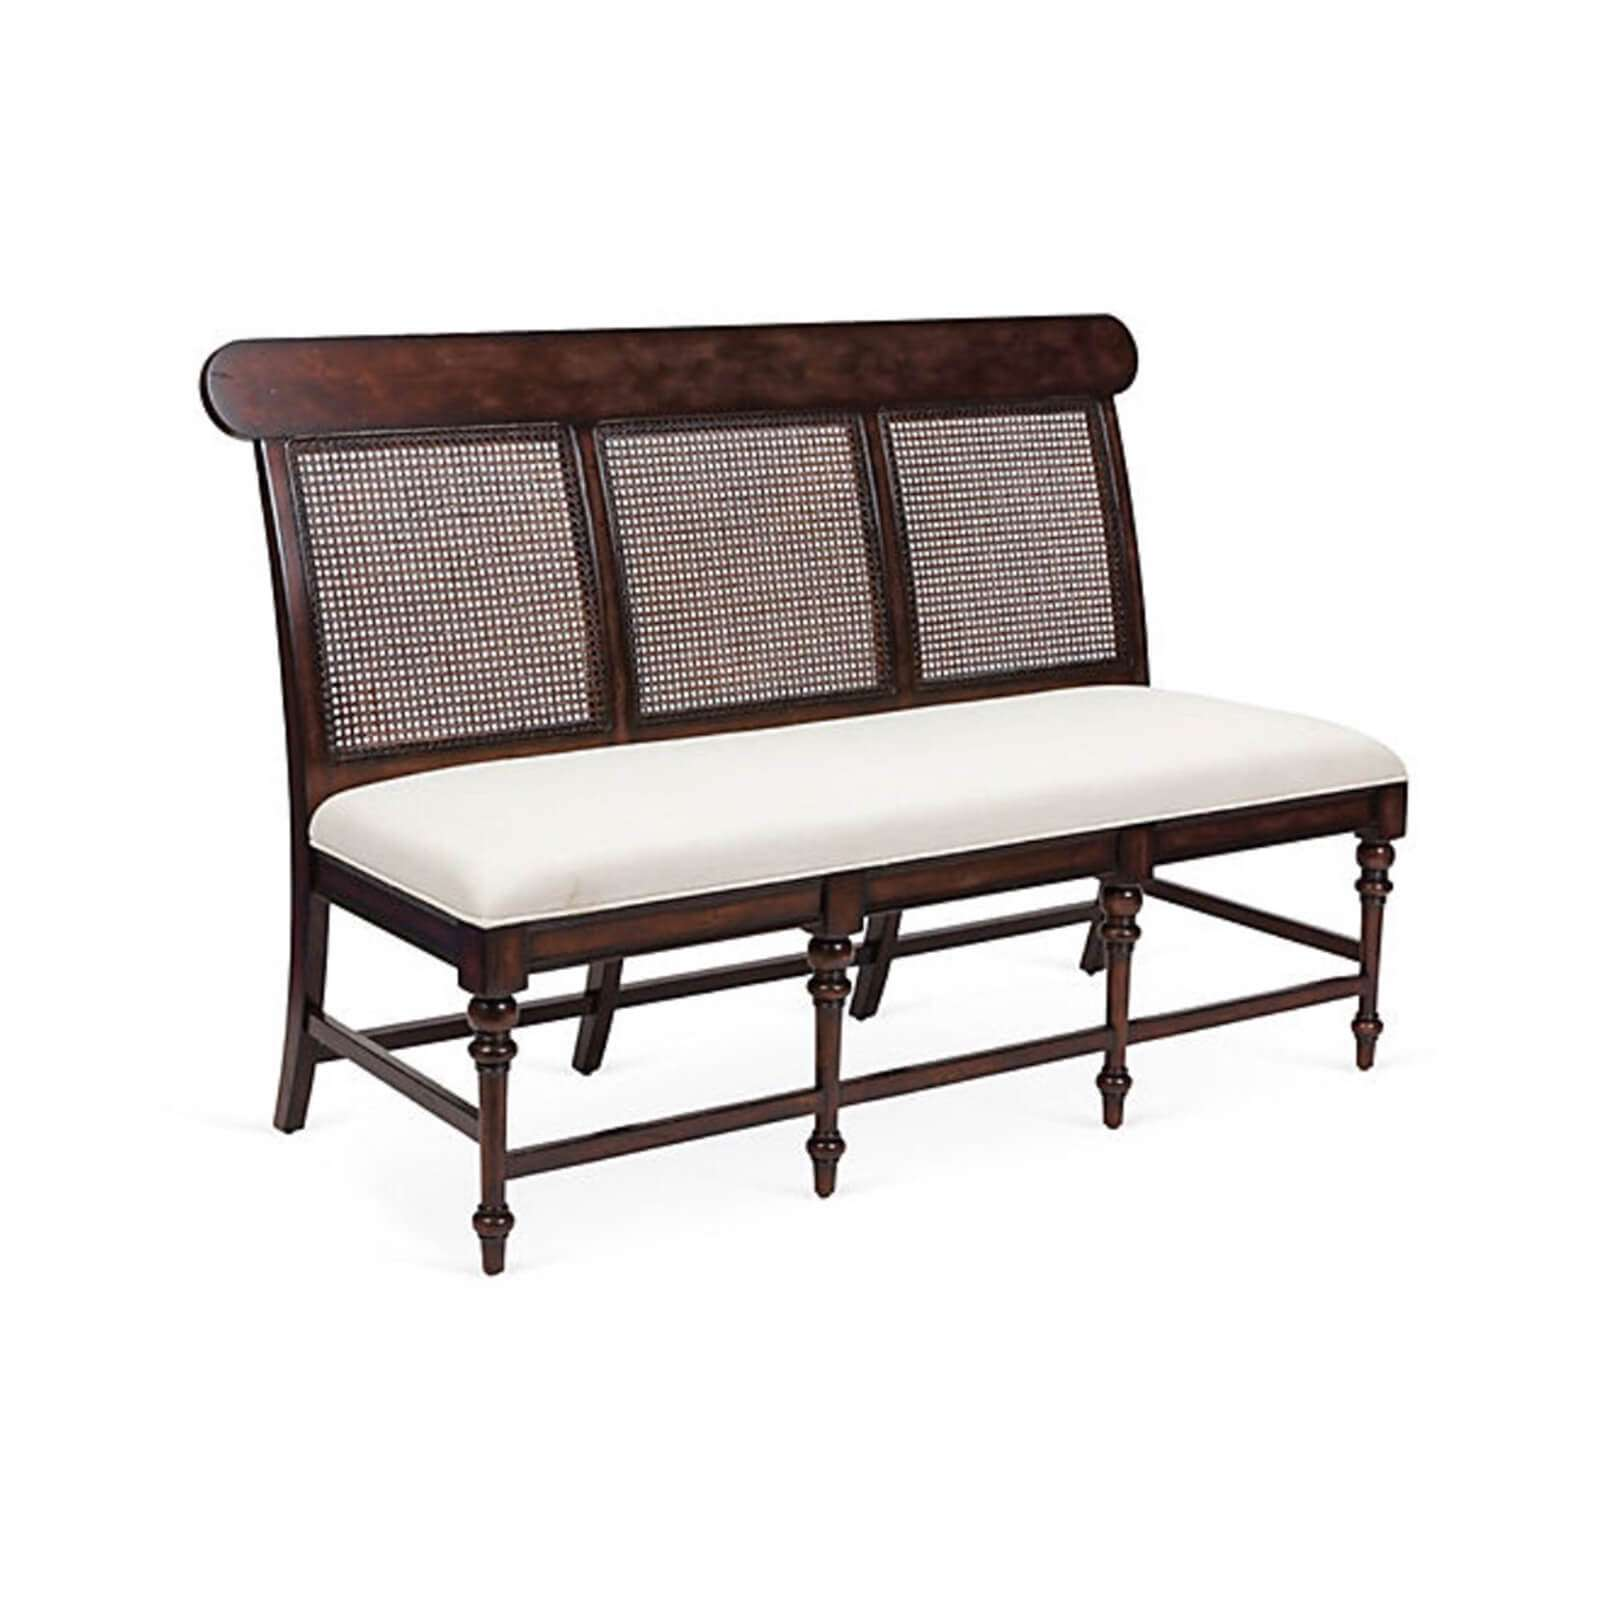 MADRAS DINING BENCH